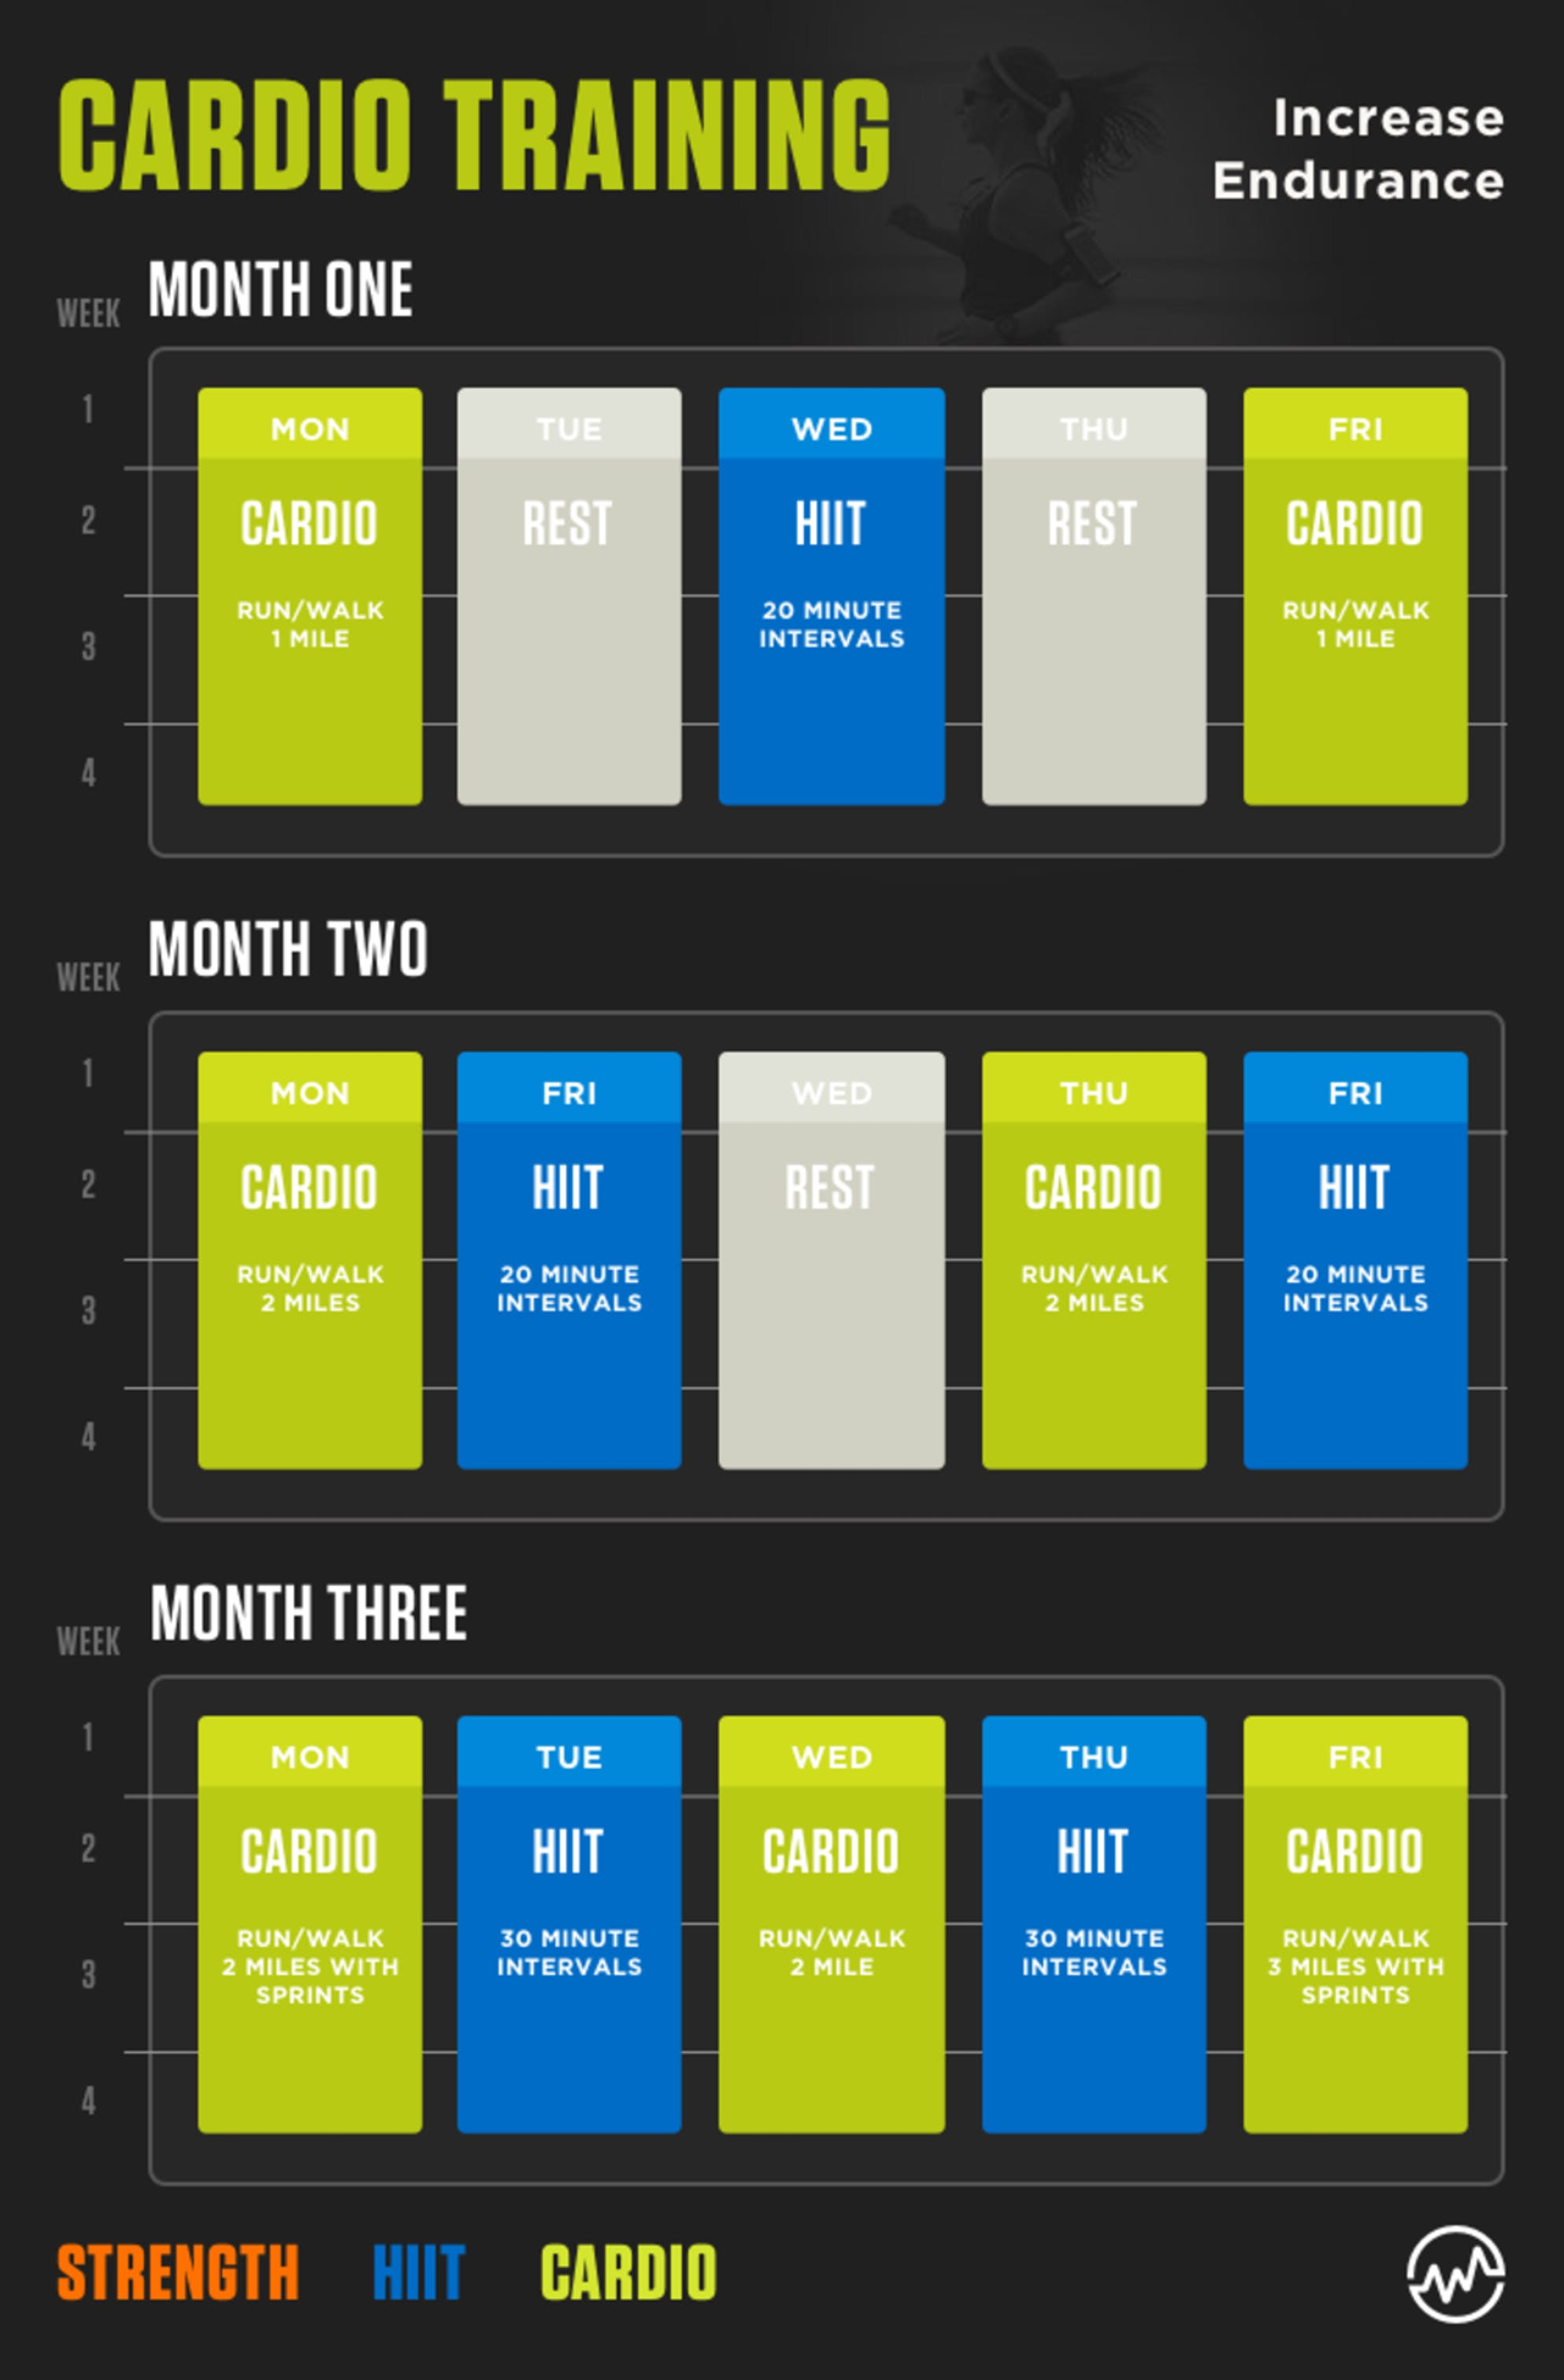 How to create your own workout plan and save money: cardio training